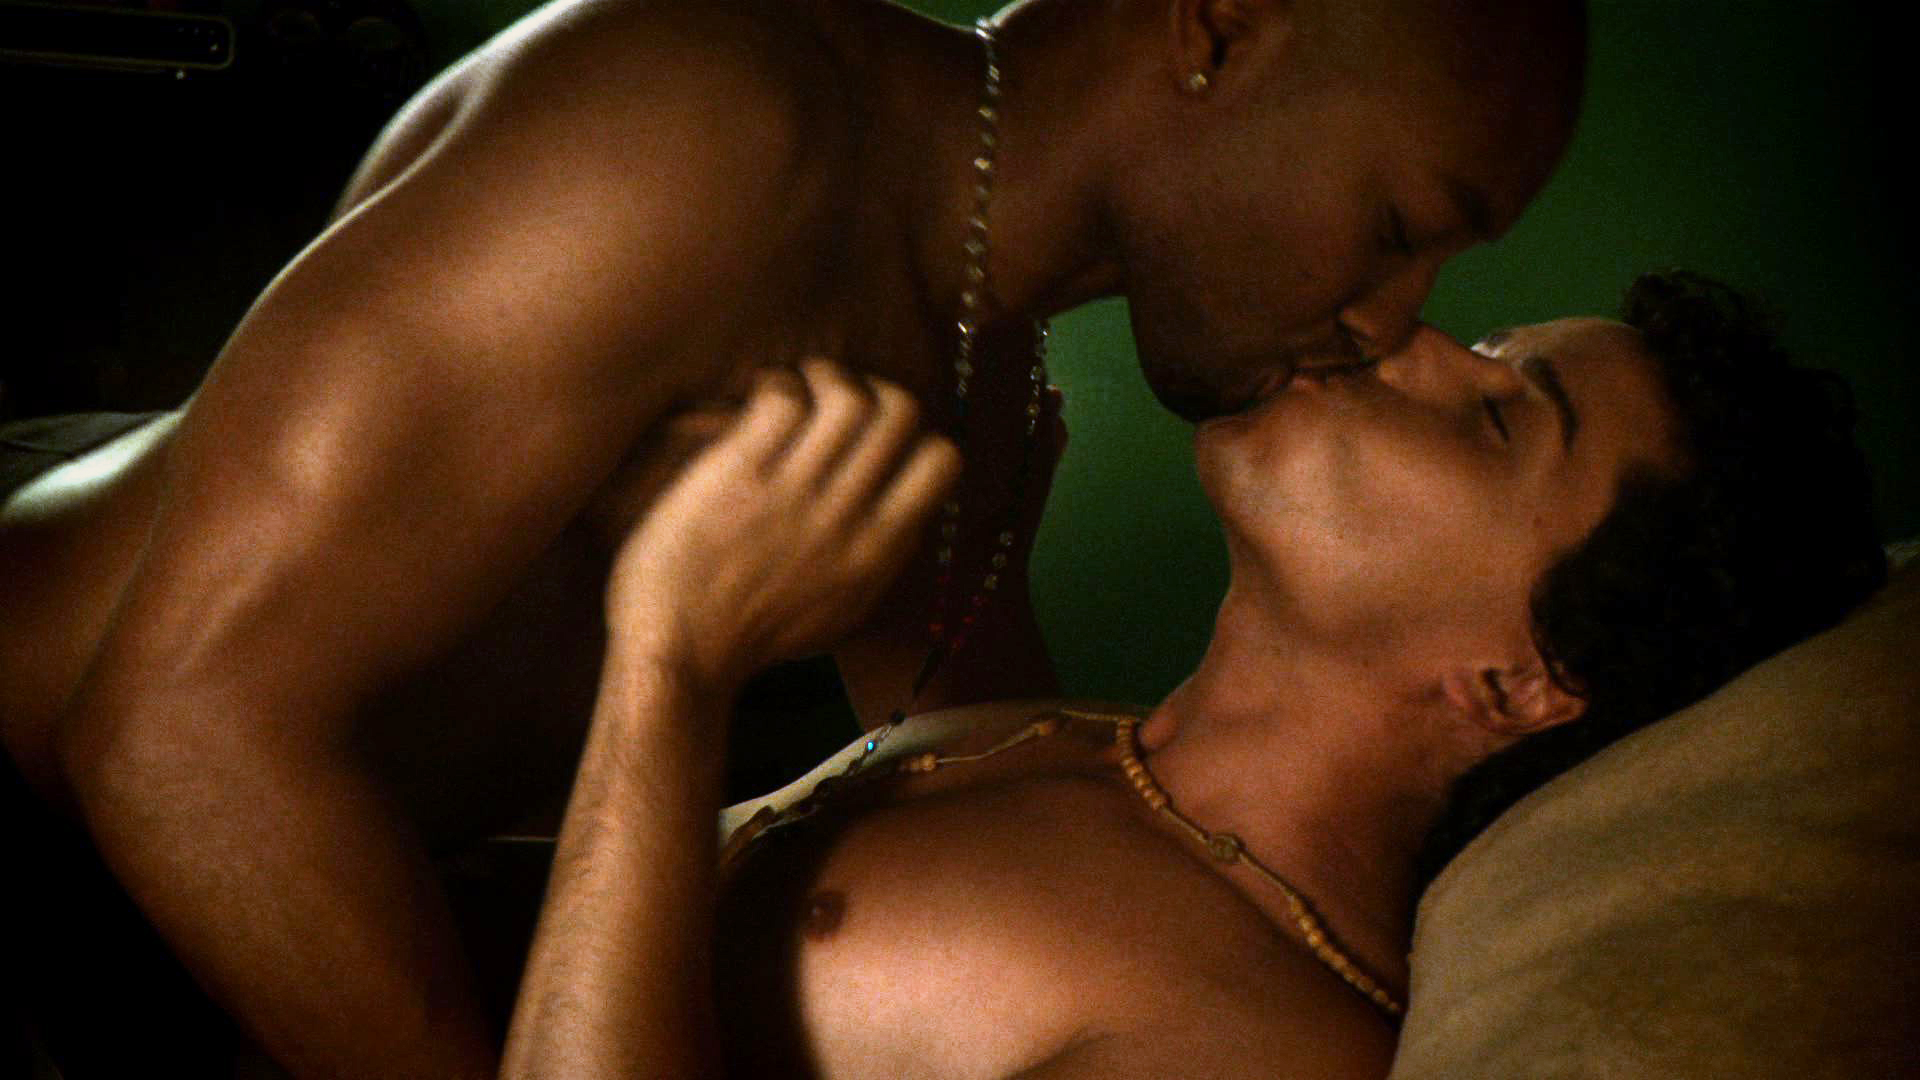 Watch lgbtq images images online